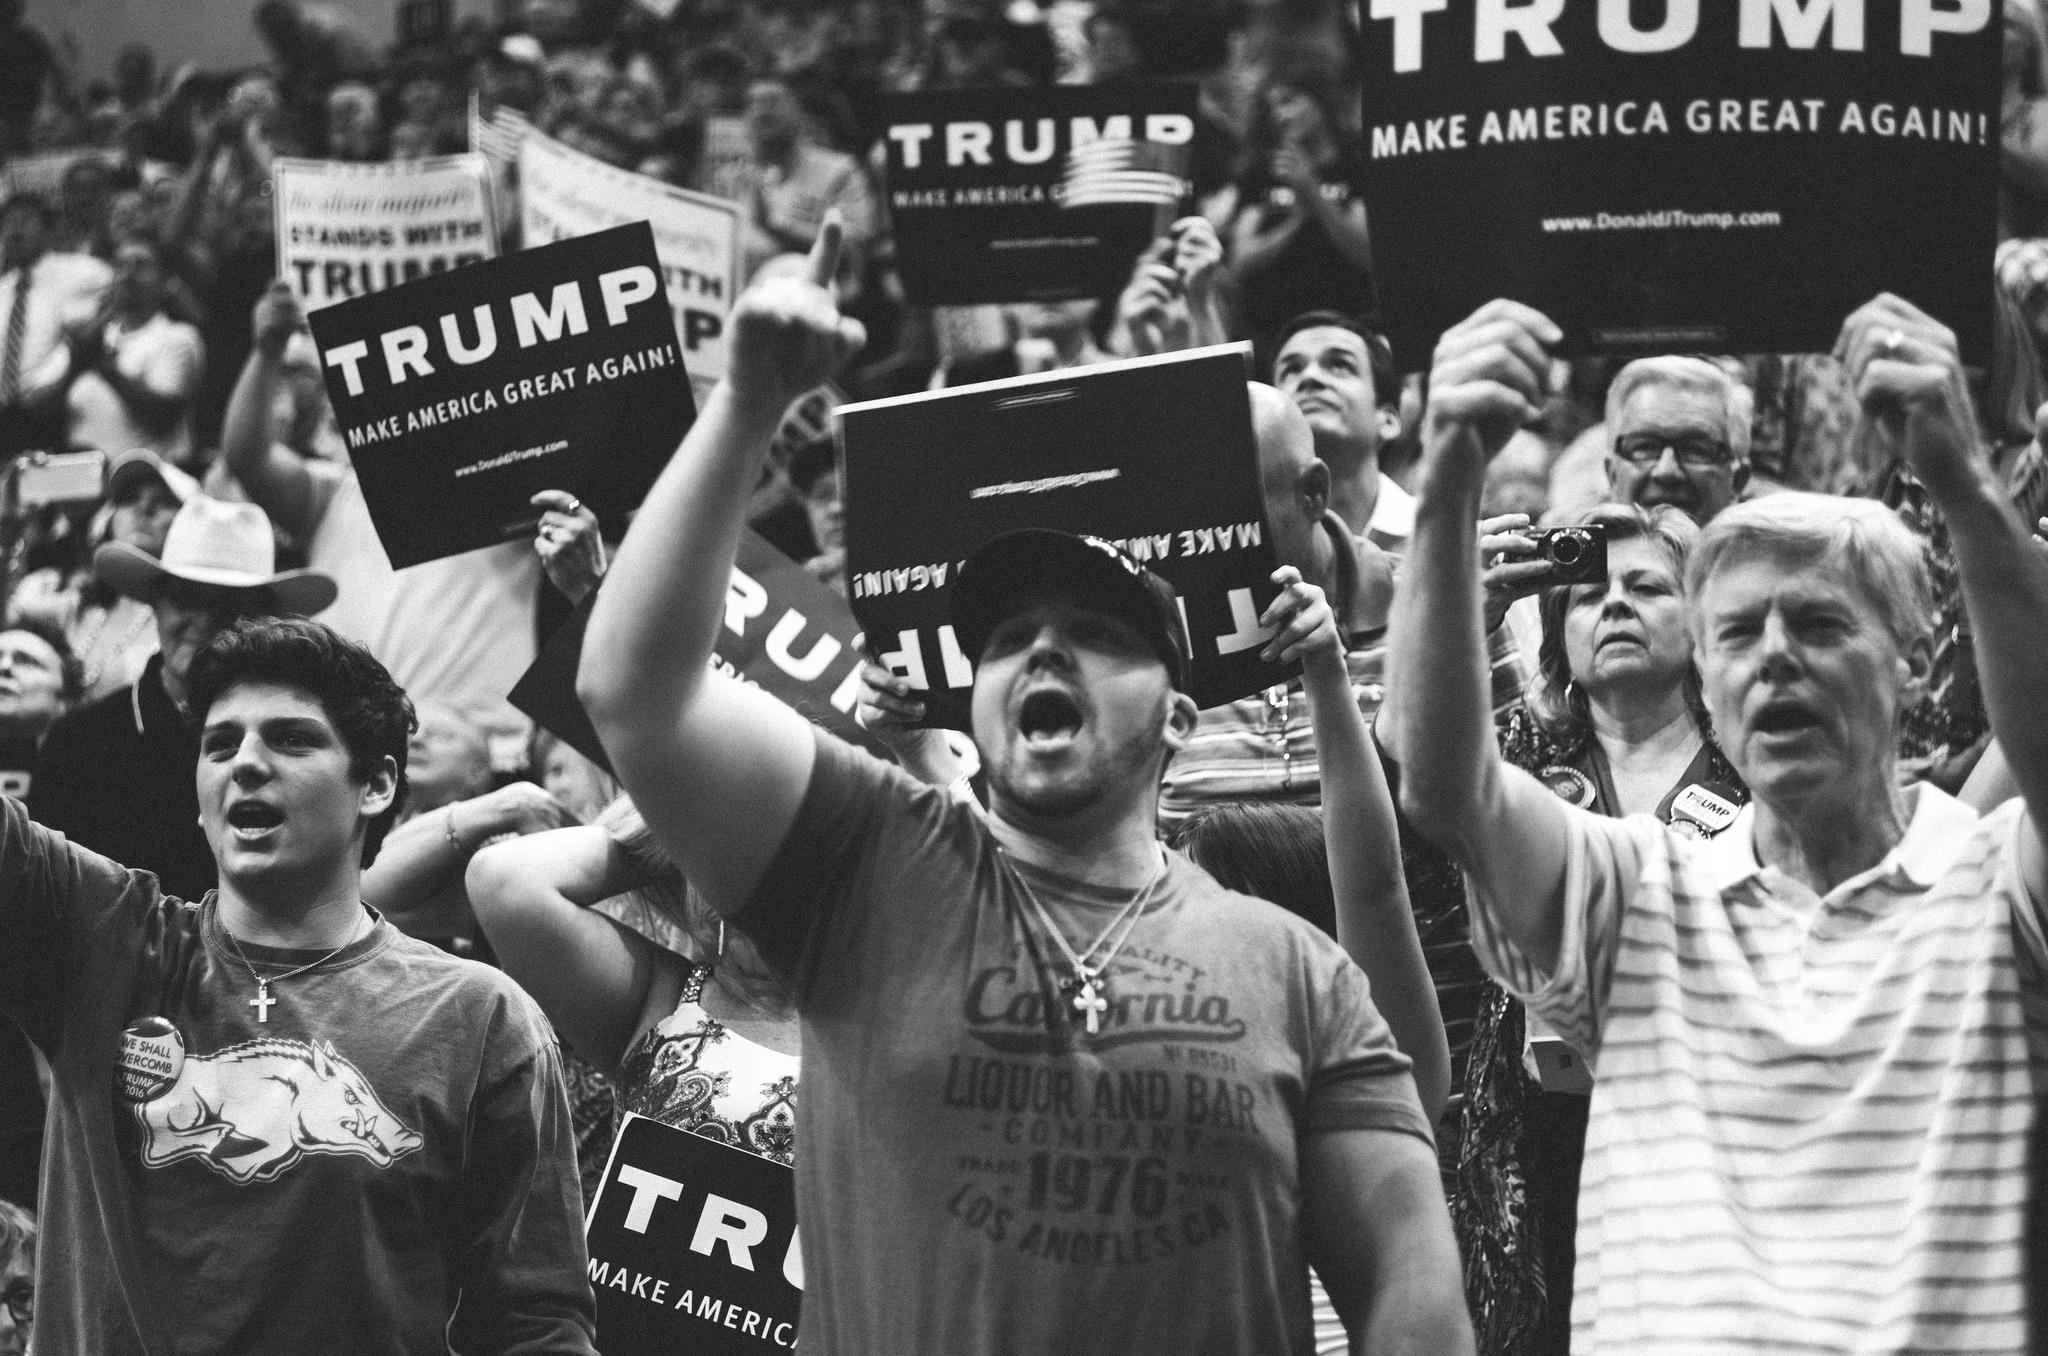 the false equivocation between fascism and those who oppose it